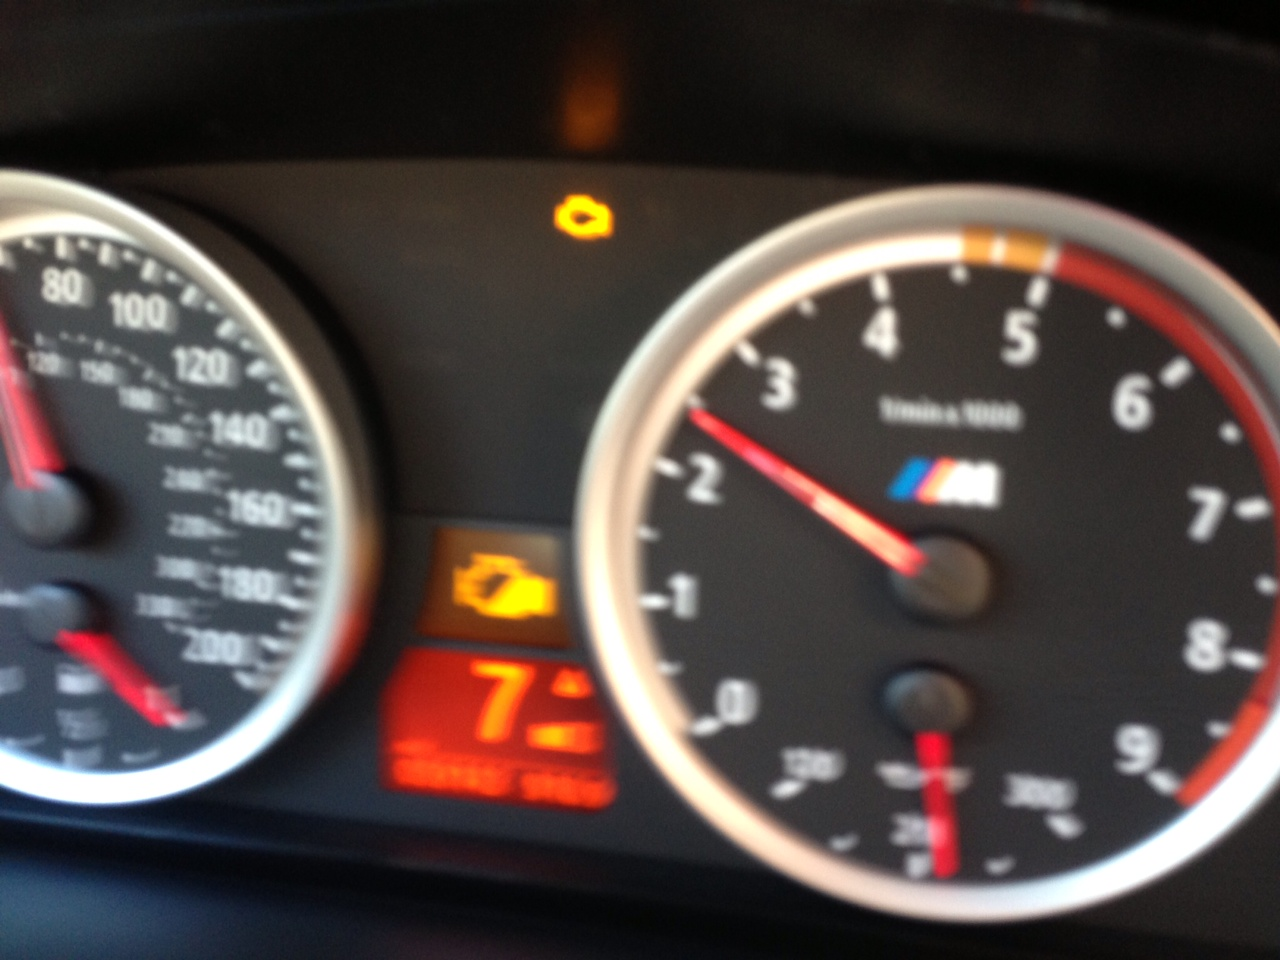 Bmw Engine Symbols >> Reduced Engine Power - Increased Emissions - BMW M5 Forum and M6 Forums